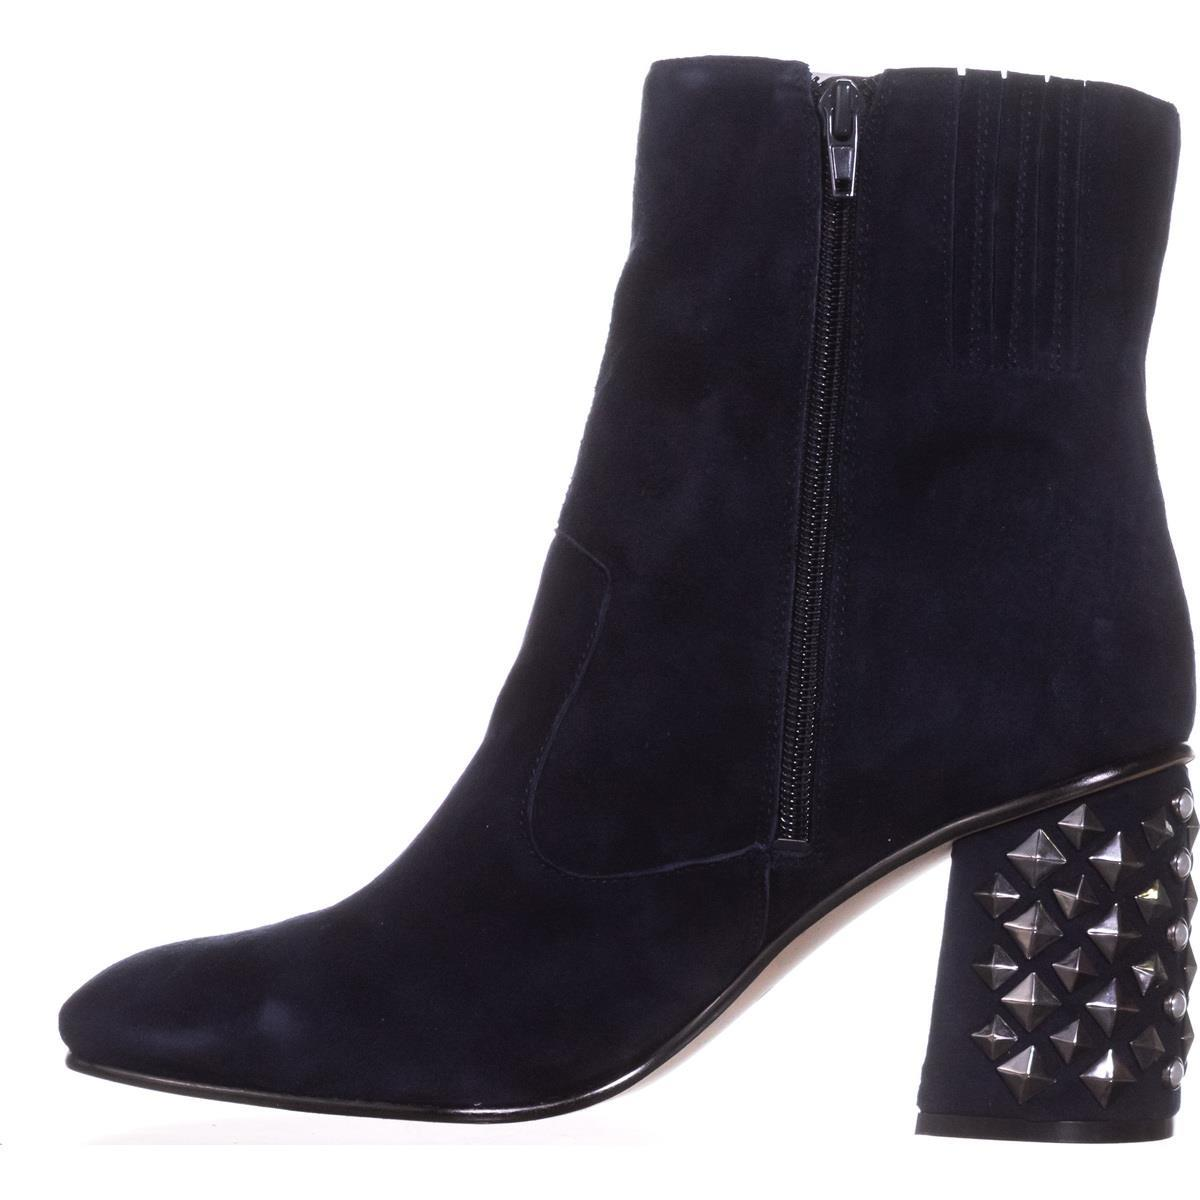 Womens Guess Madeup Studded Heel Ankle Boots, Dark Blue, 11 US